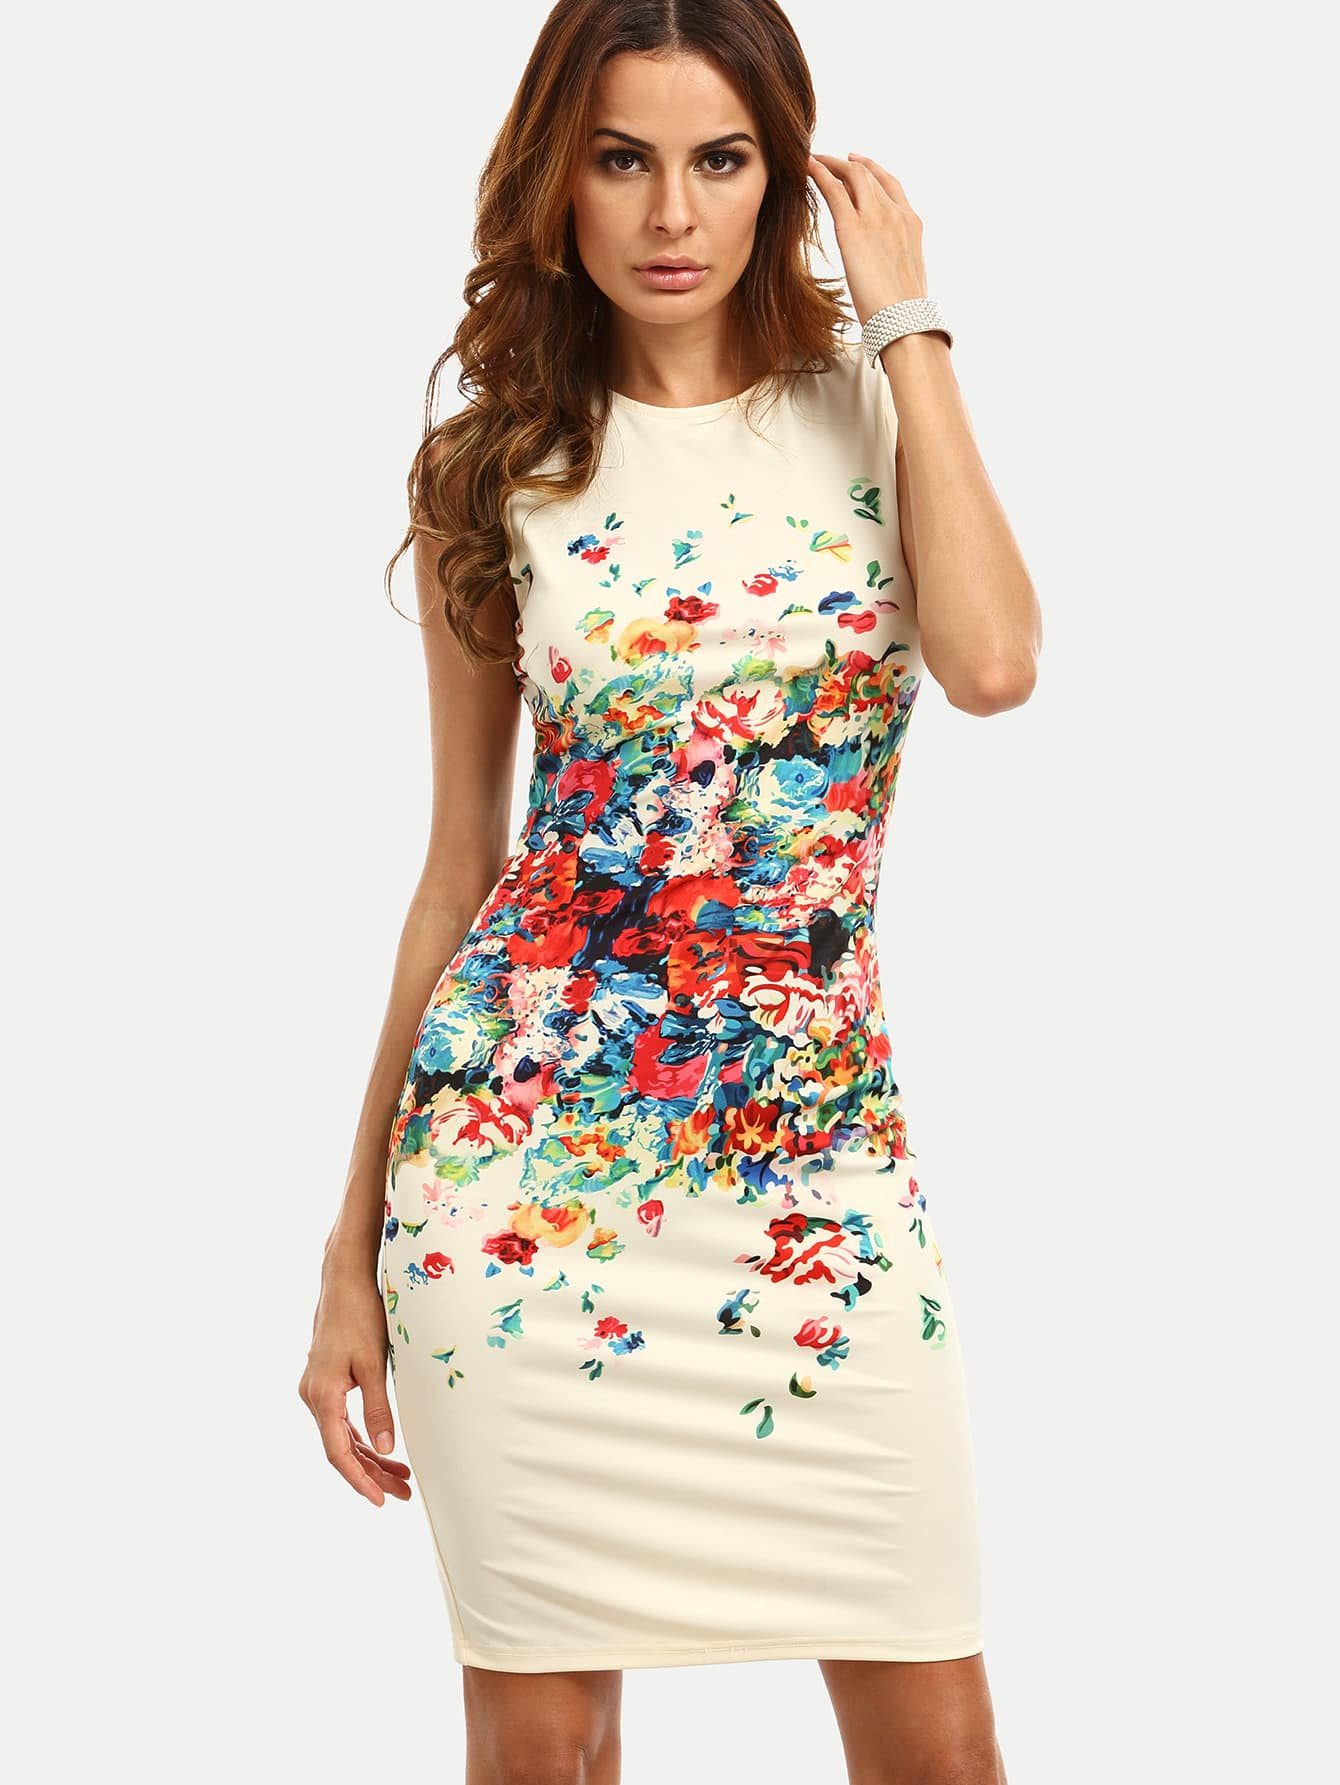 Bodycon & Bandage Dresses. There's no better way to show off your curves than with a form-fitting bodycon dress, and here at GoJane, we carry a huge selection for girls with all kinds of styles.